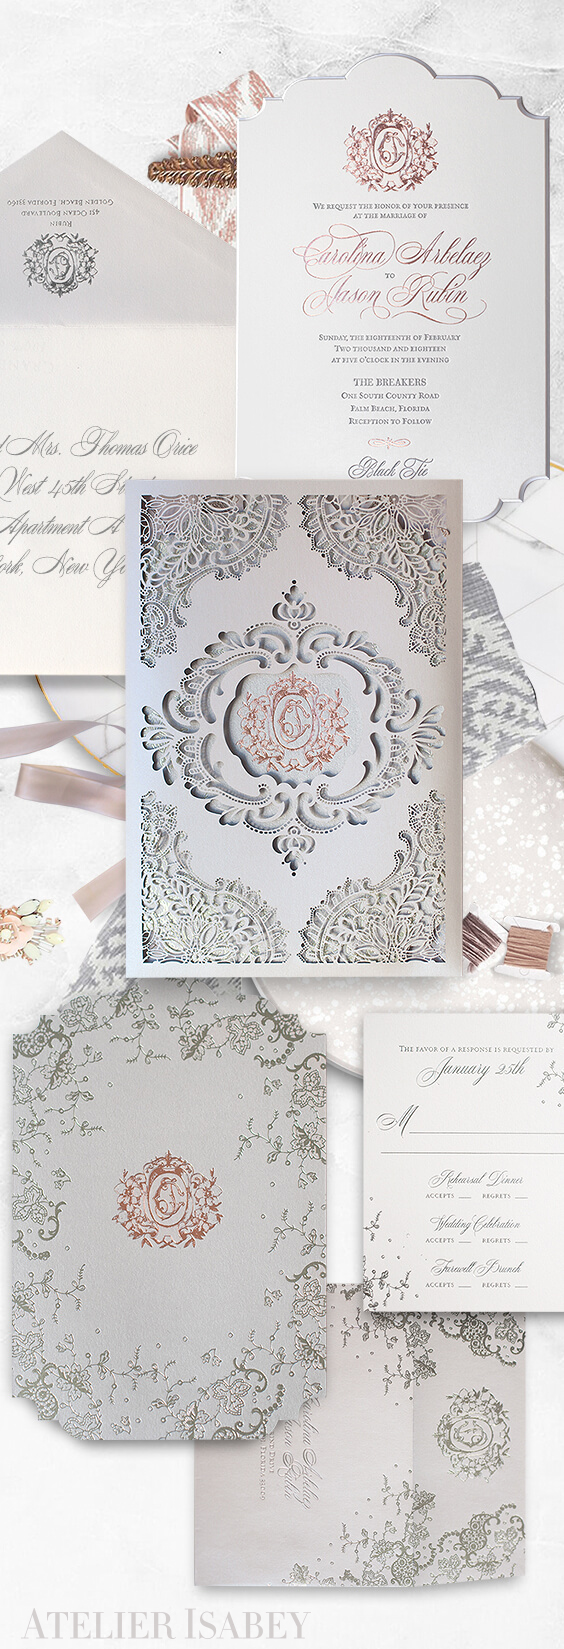 Ornate lace laser cut and rose gold wedding invitation for a wedding at The Breakers | By Atelier Isabey